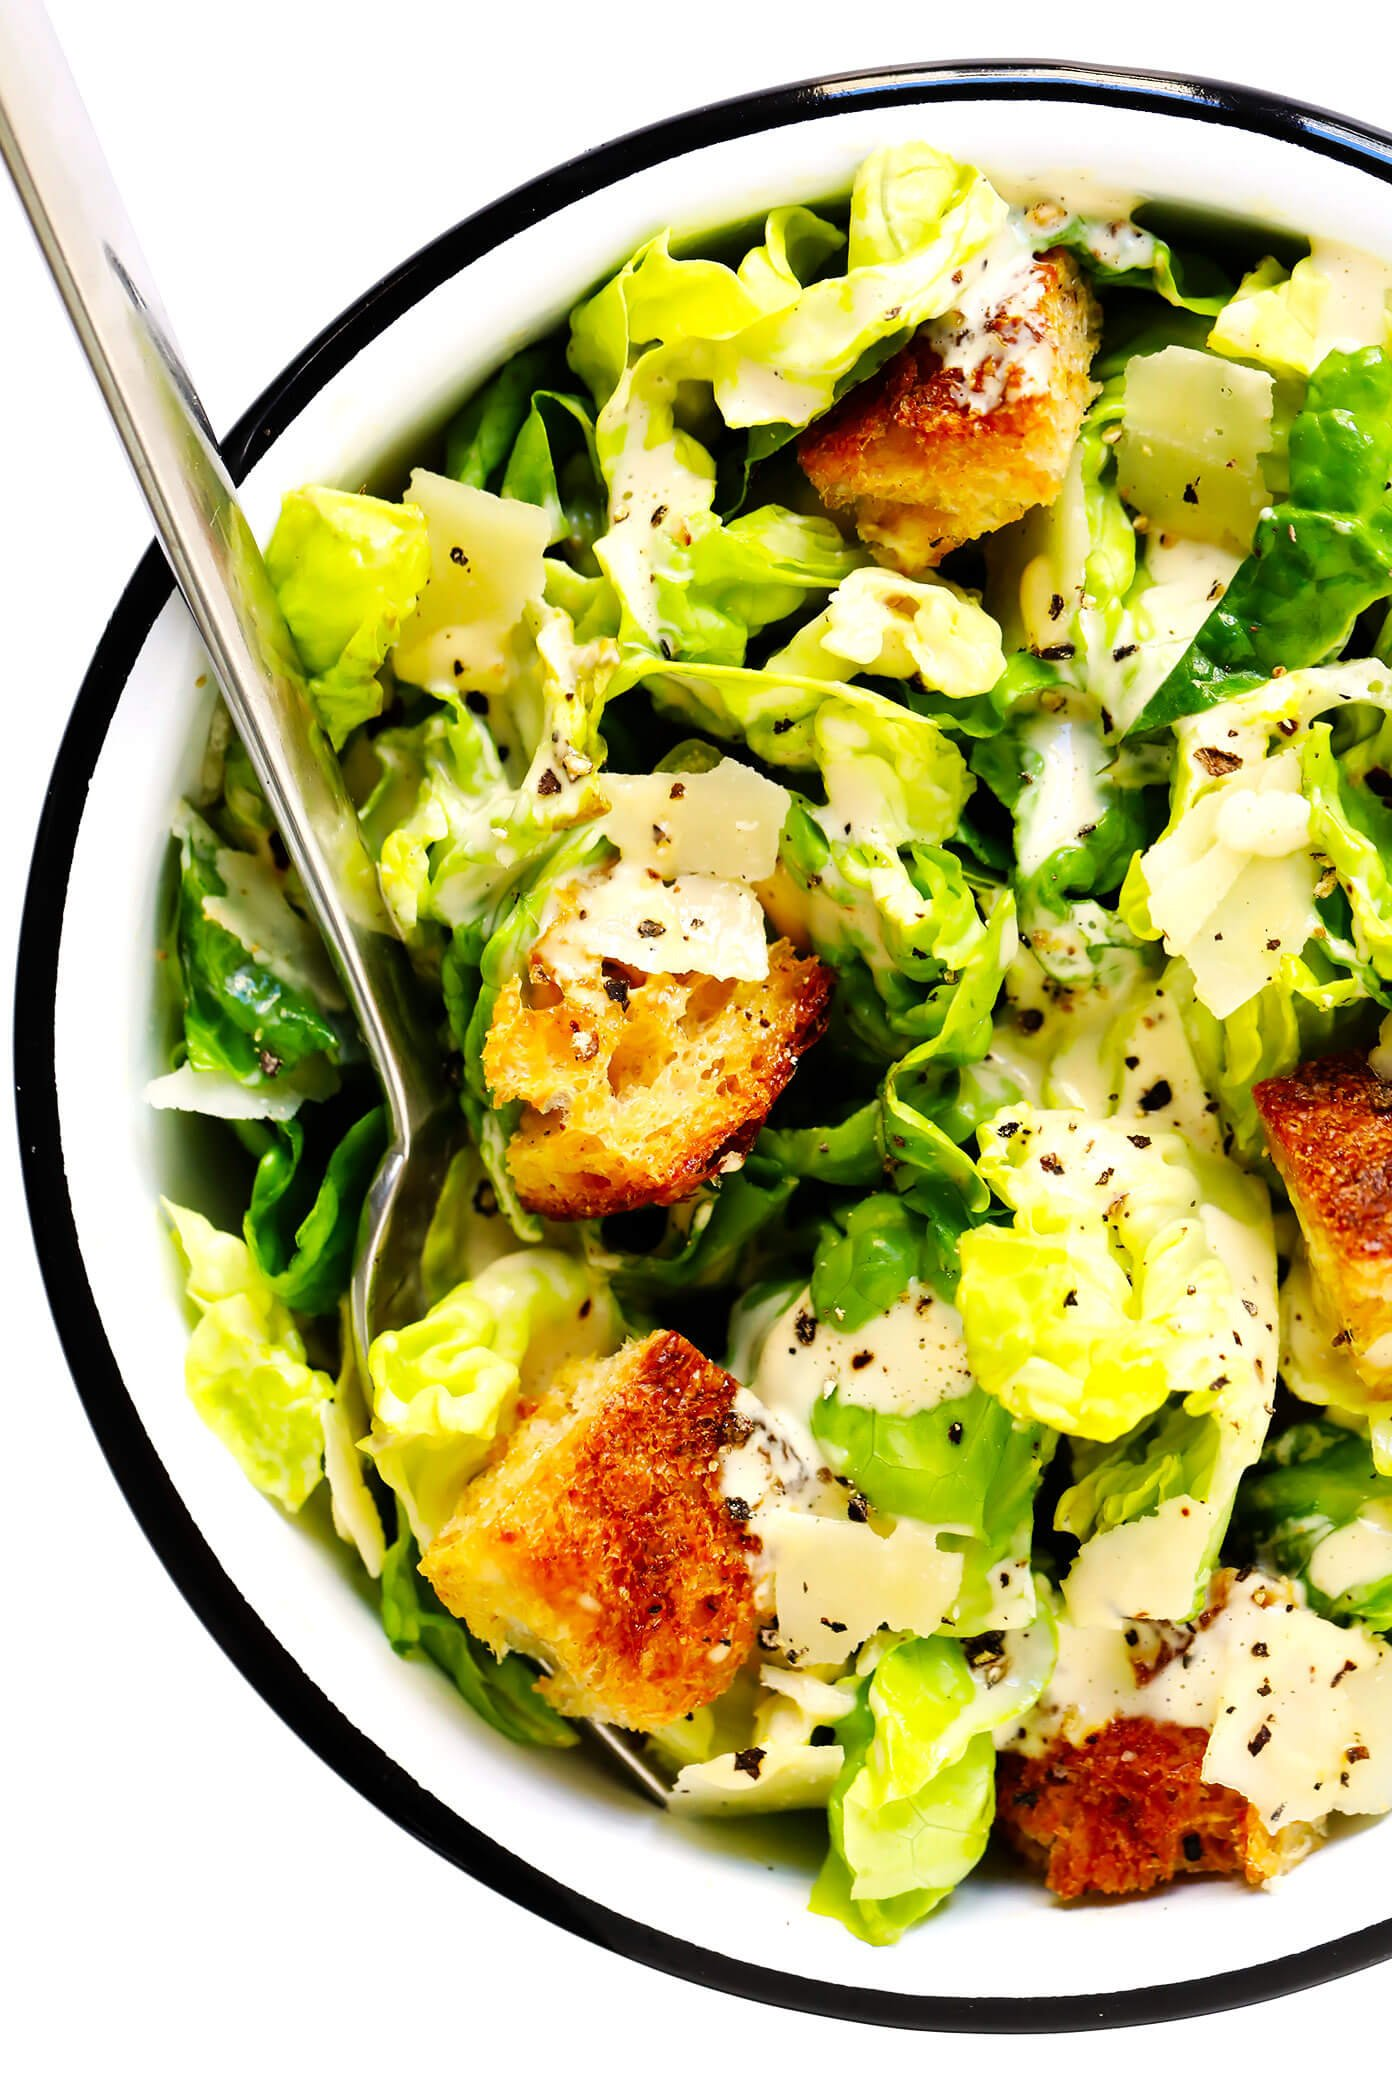 Caesar Salad In Bowl With Croutons and Parmesan